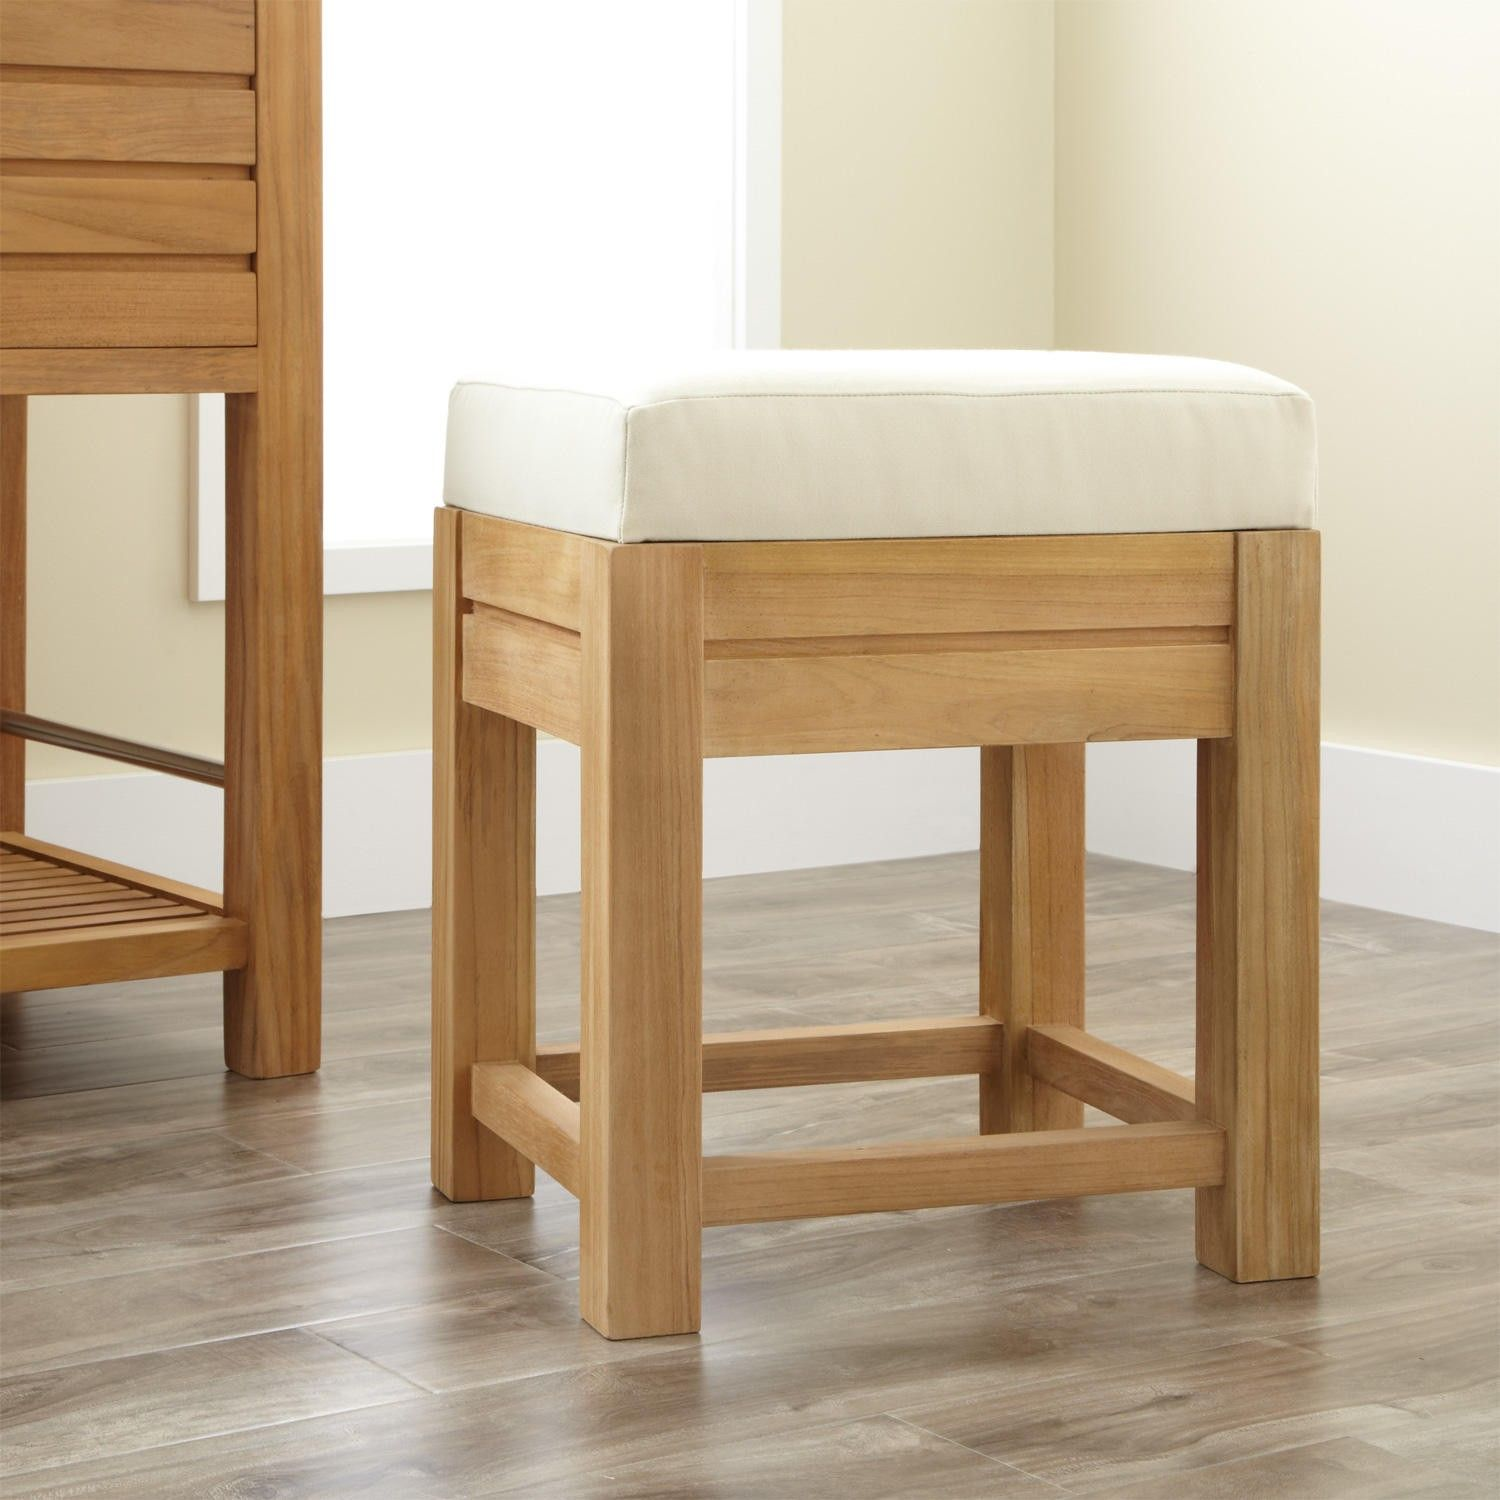 Banquetas De Baño Banta Teak Bathroom Stool With Fabric Top Bathrooms